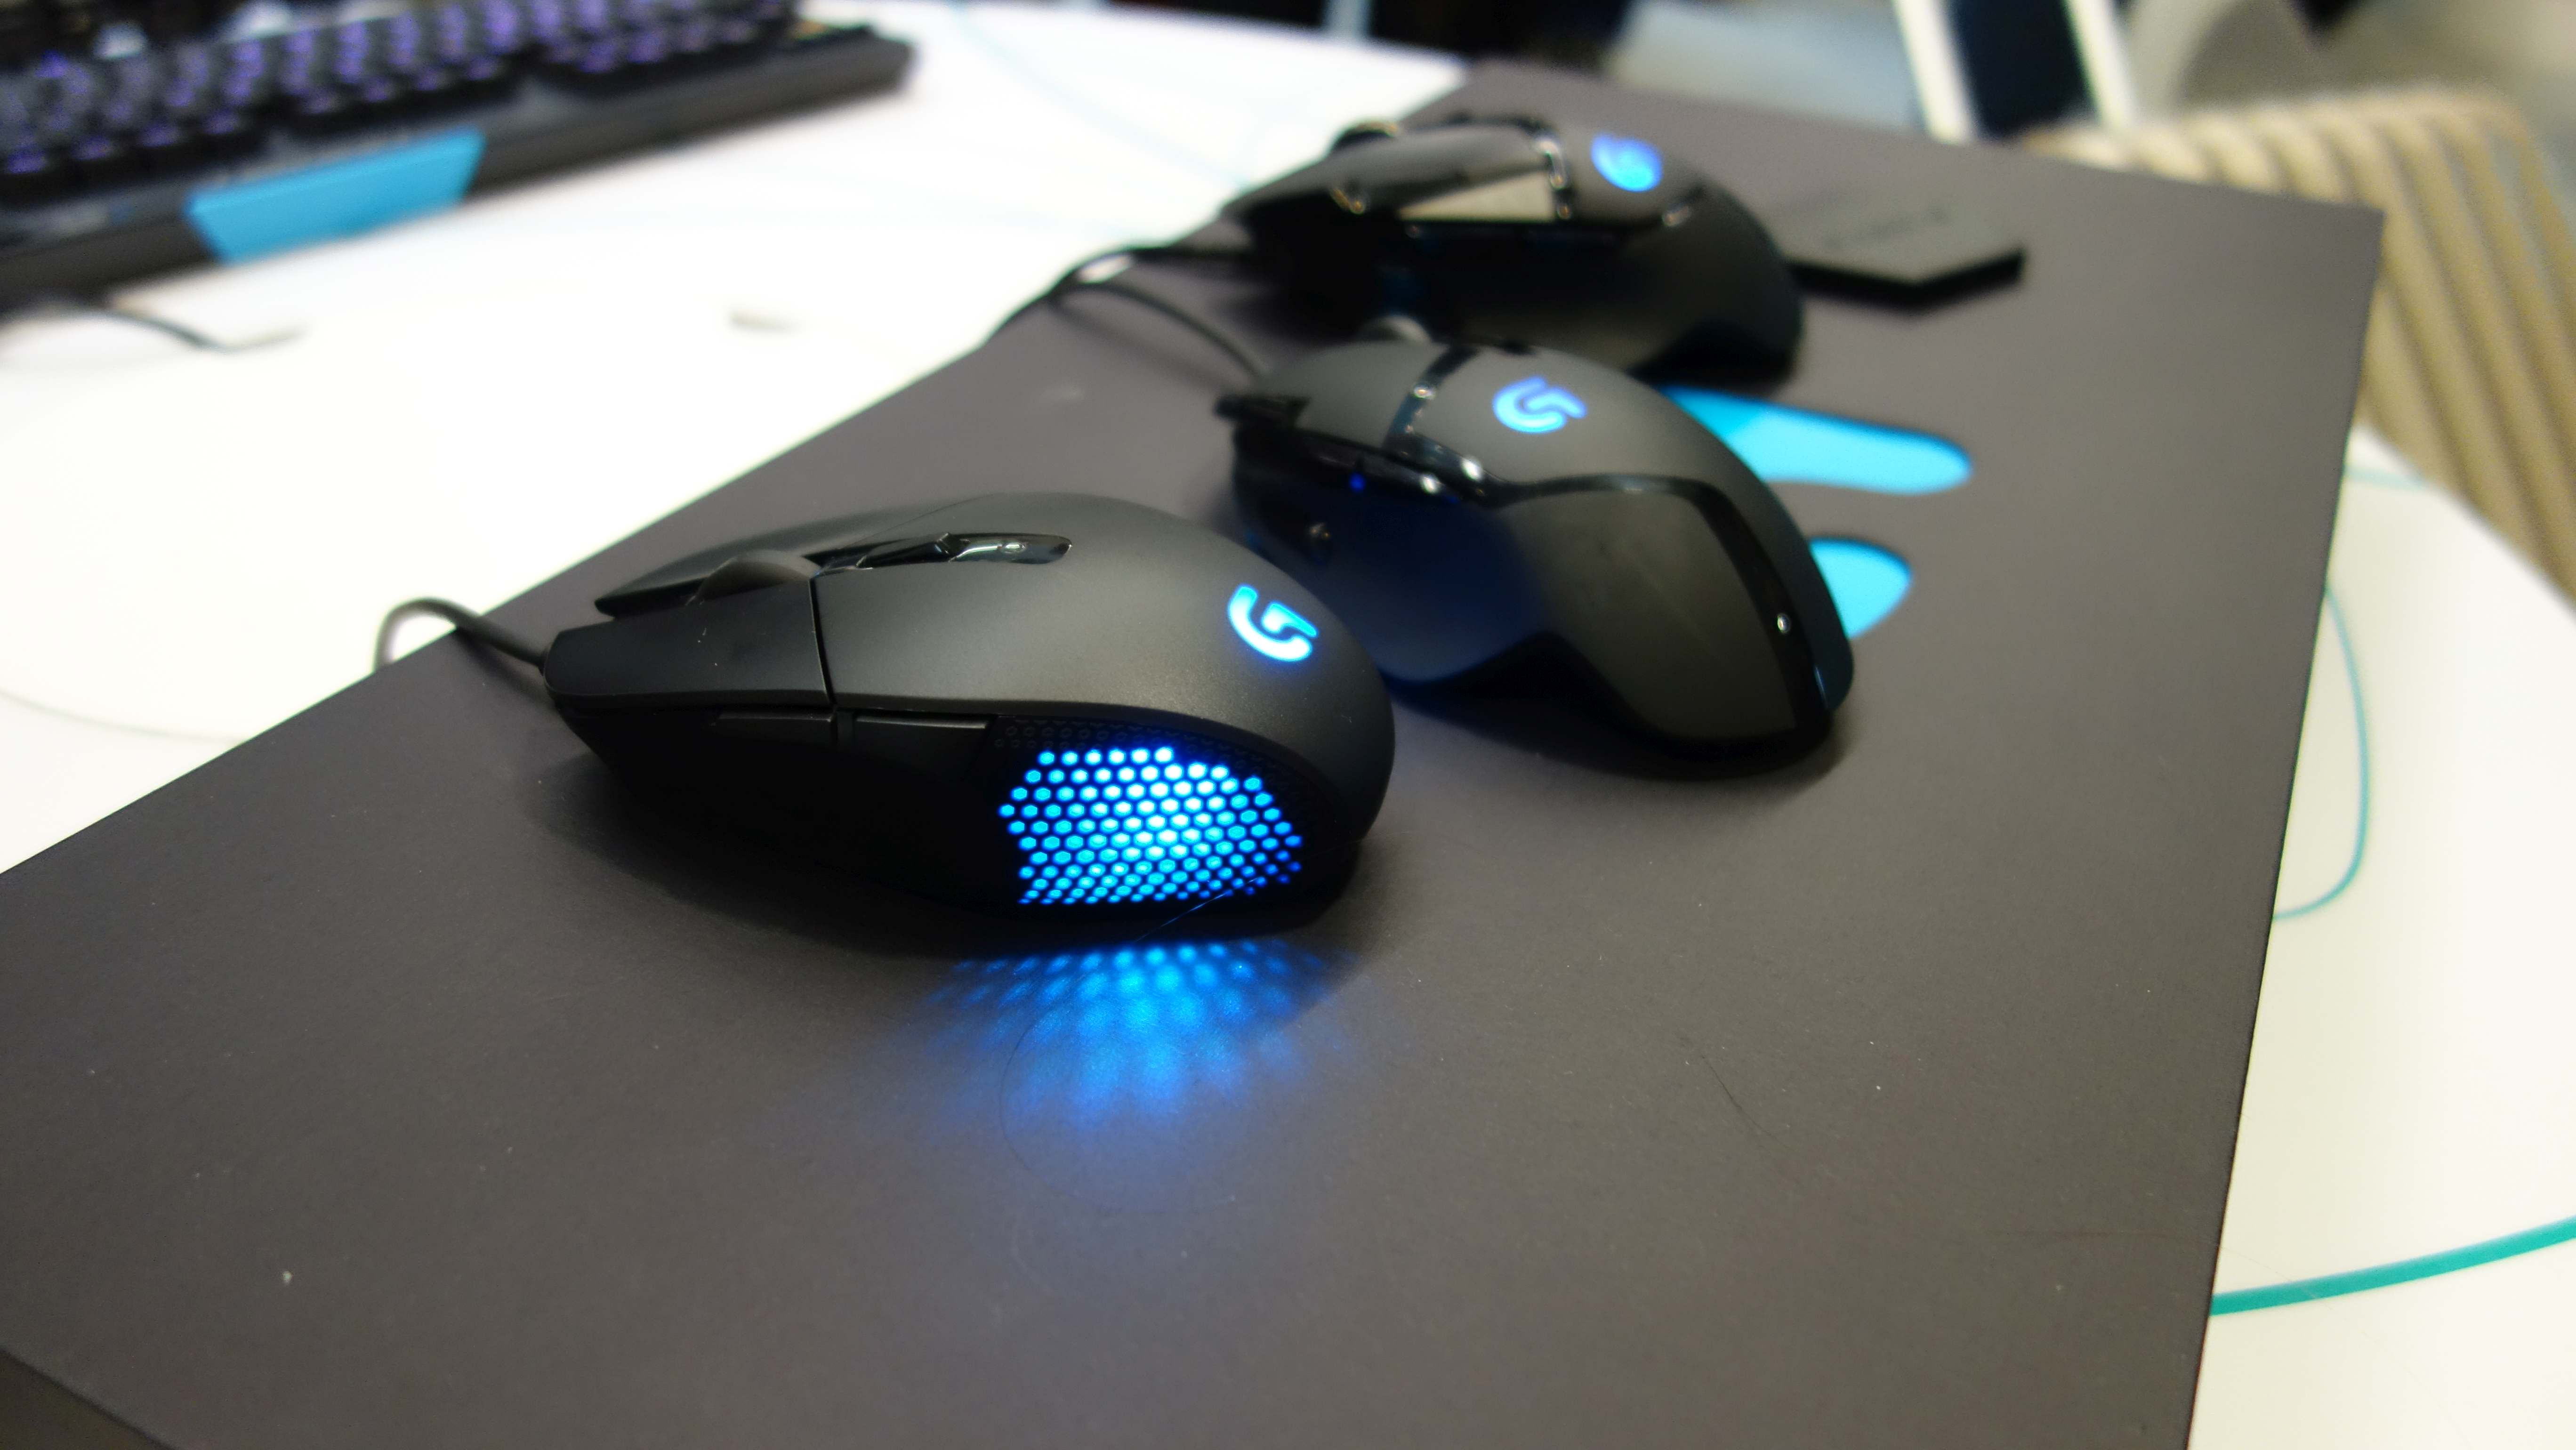 An Inside Look at How Logitech Designs Its Gaming Mice | PC